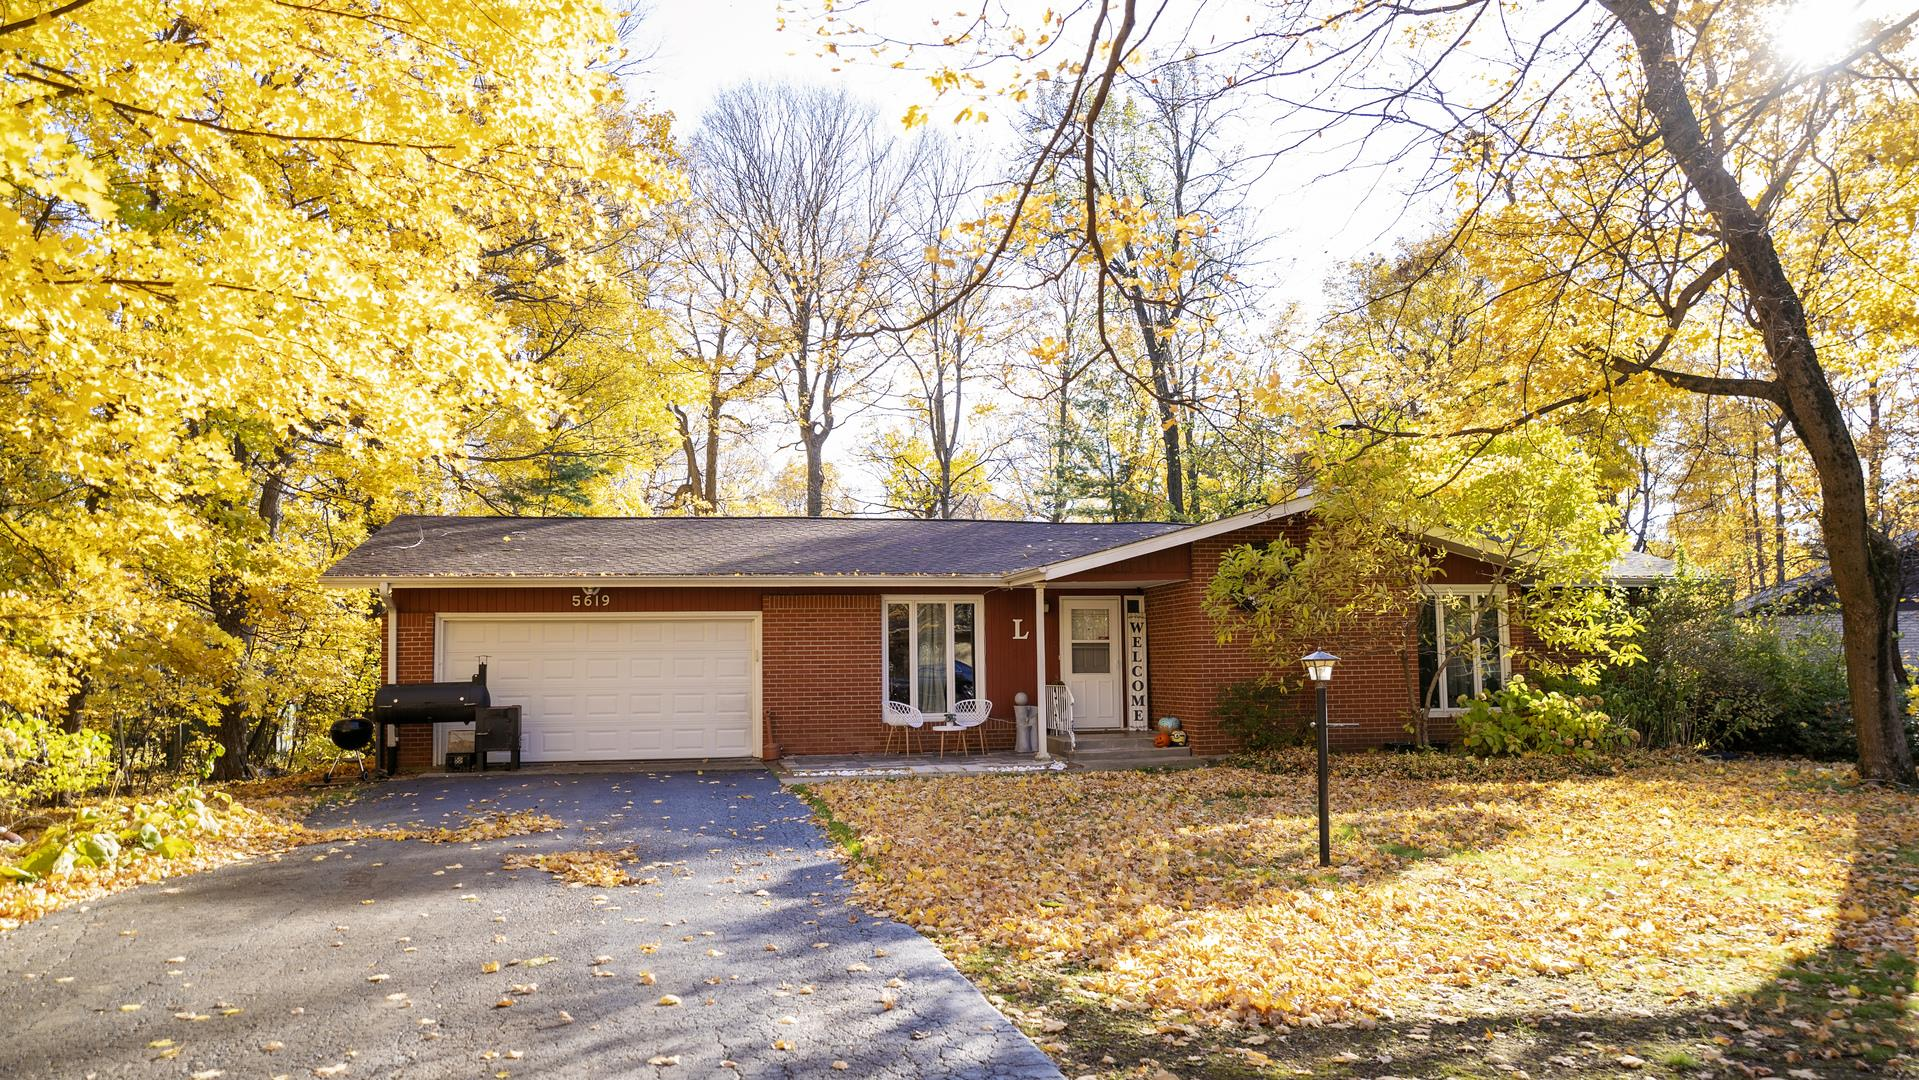 5619 Castlewood Court, Rockford, IL 61108 - #: 10930780